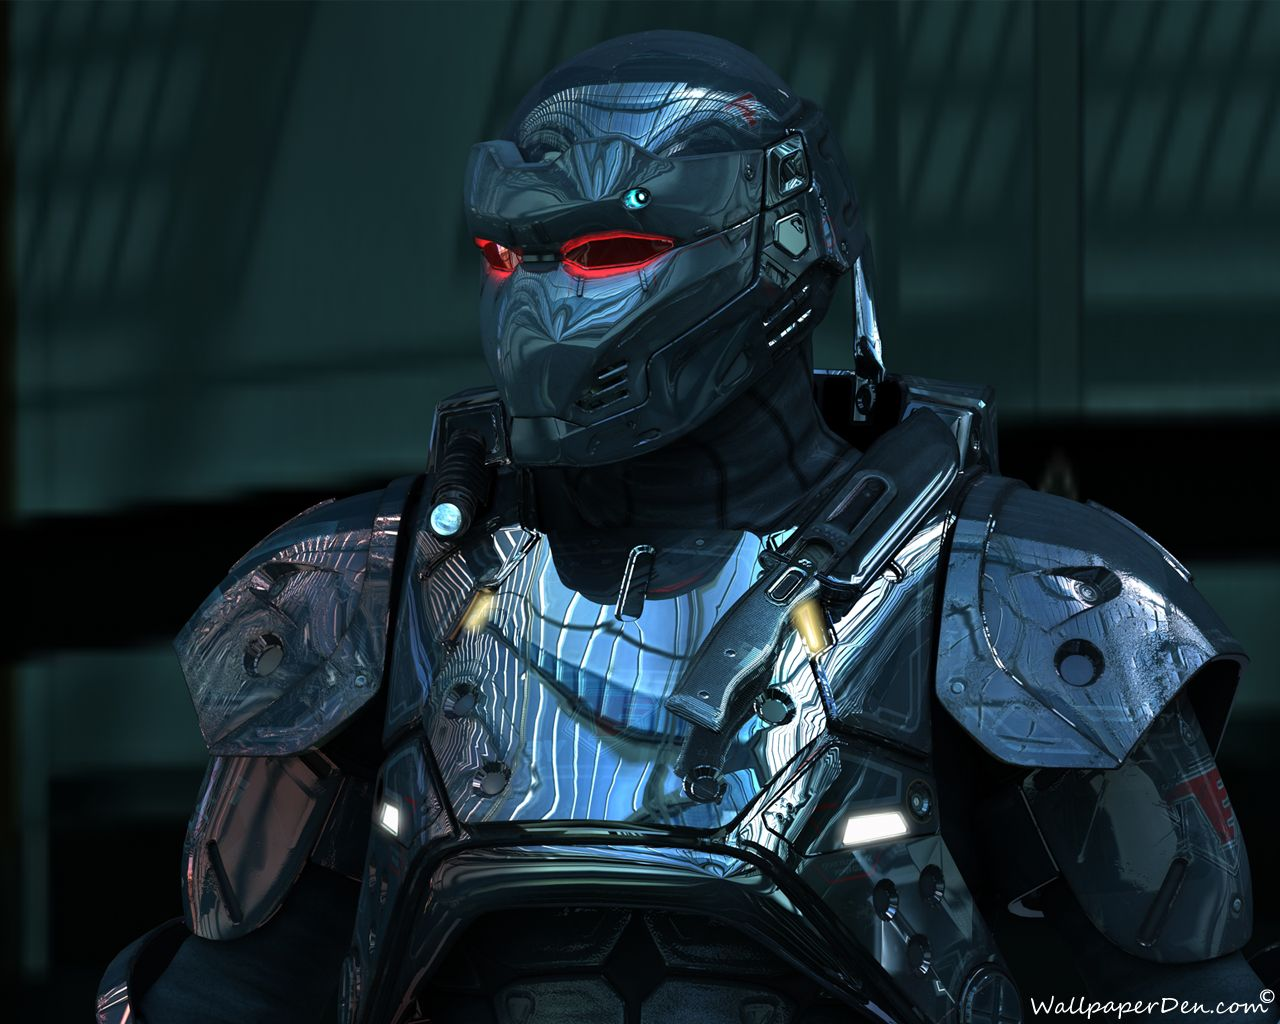 Wallpaper Robot Sci Fi Hd 101 All Images Sci Fi Wallpaper Warriors Wallpaper Warrior Images